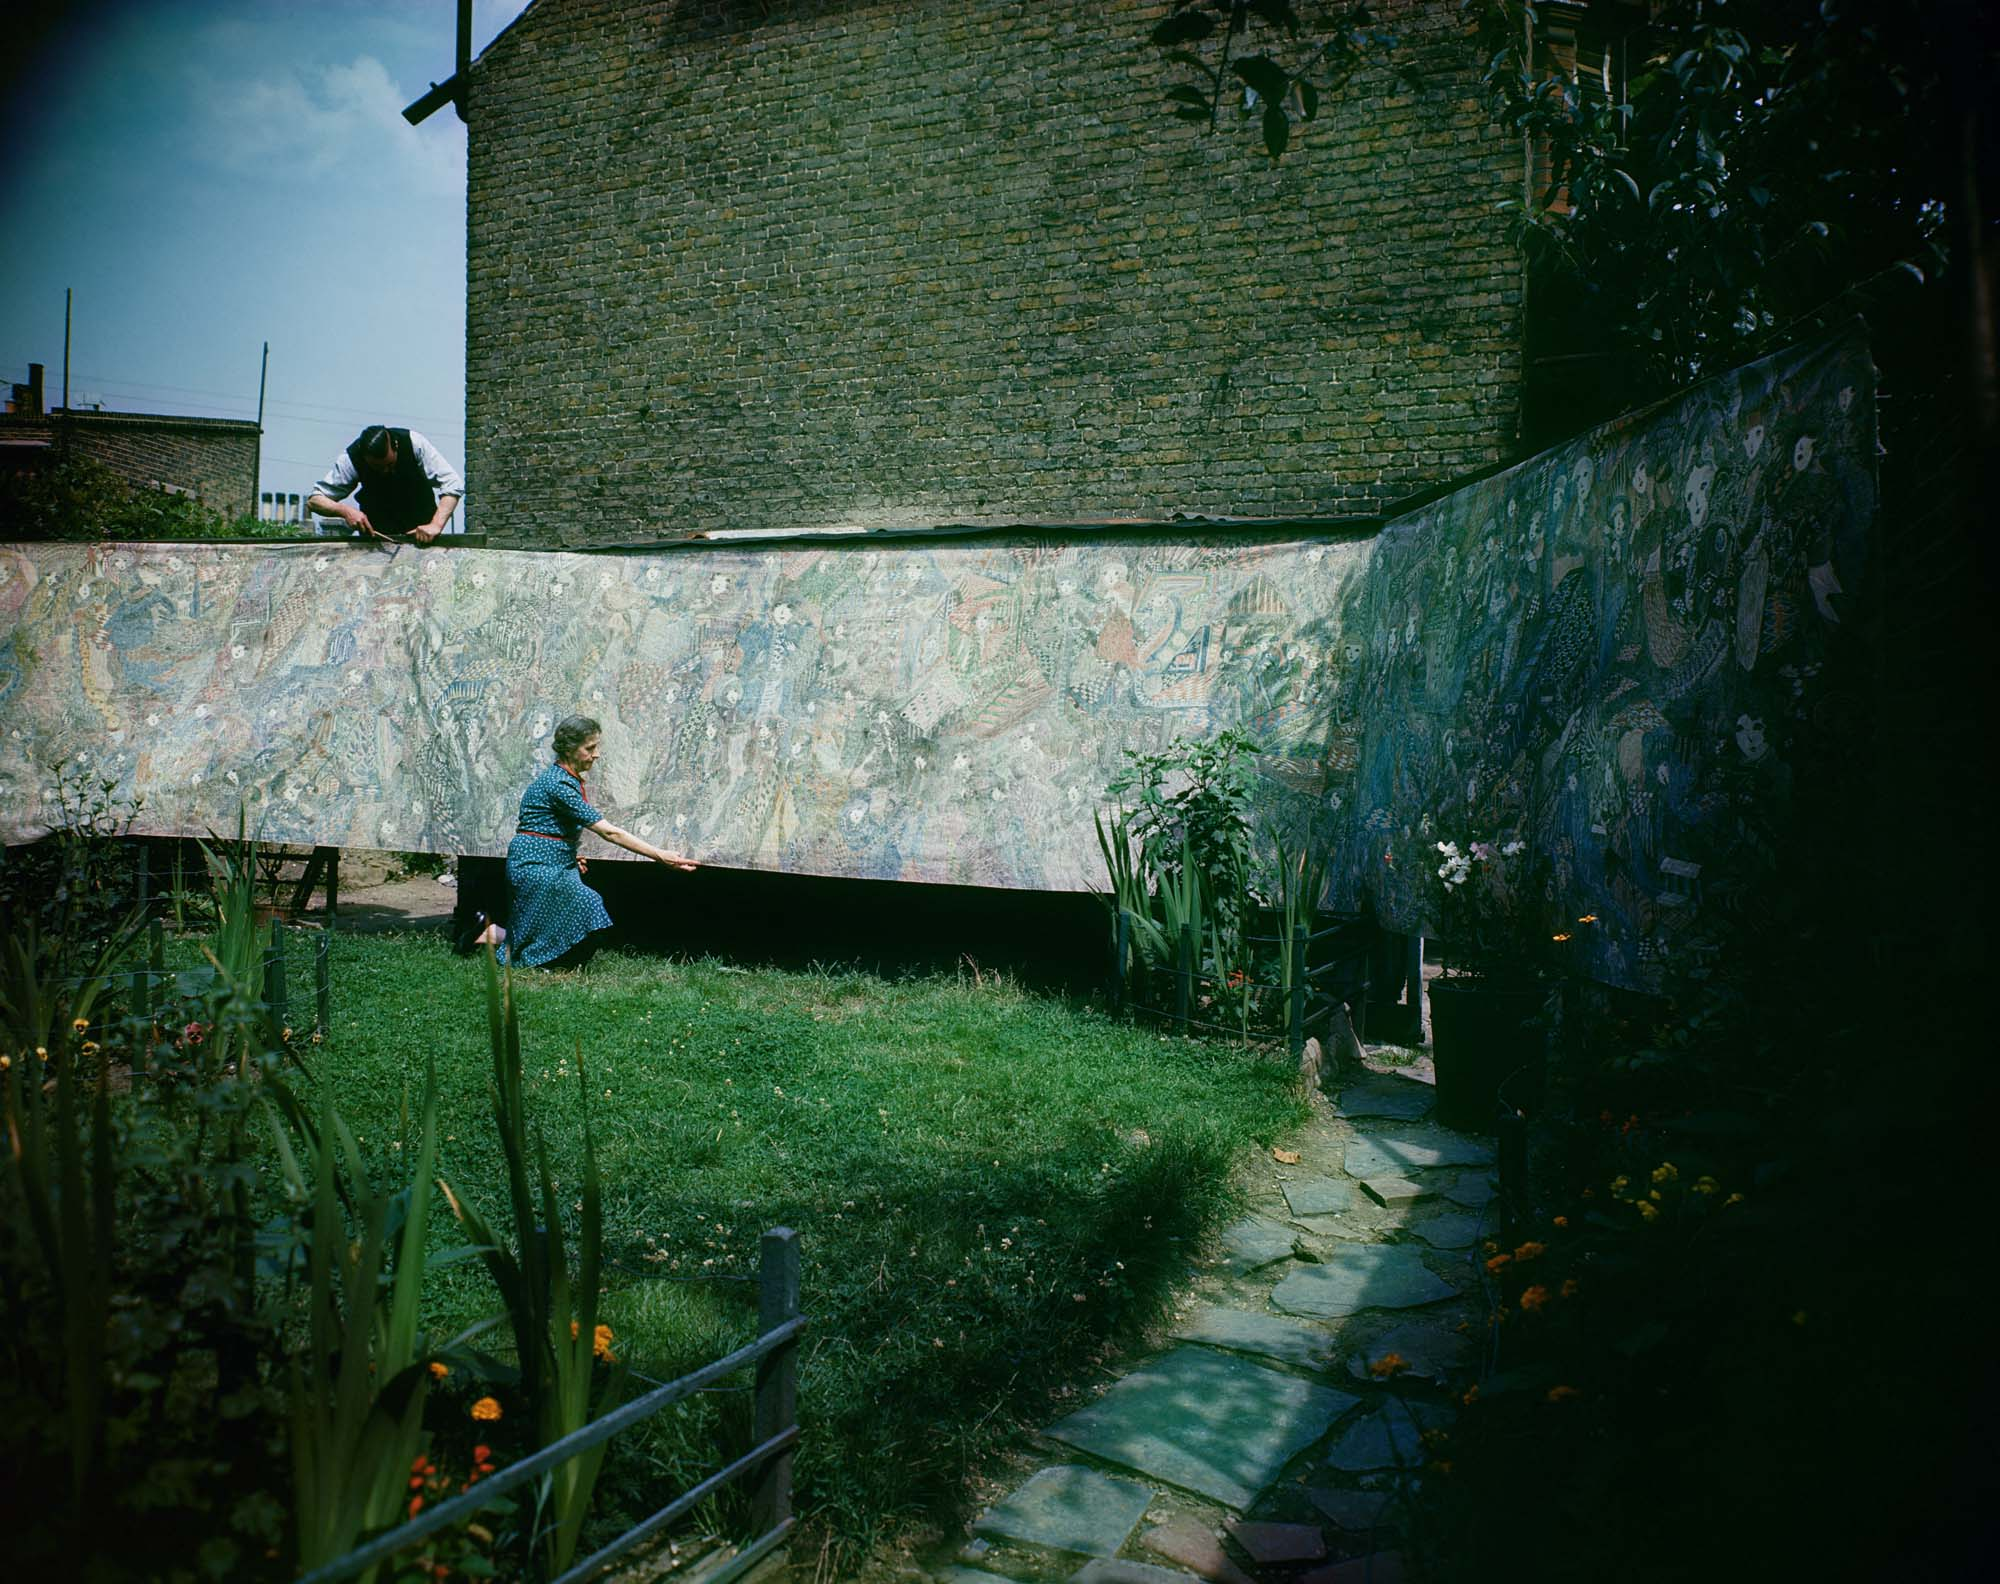 a colour photo of a woman araanging a long roll with a drawing across a wall of a garden